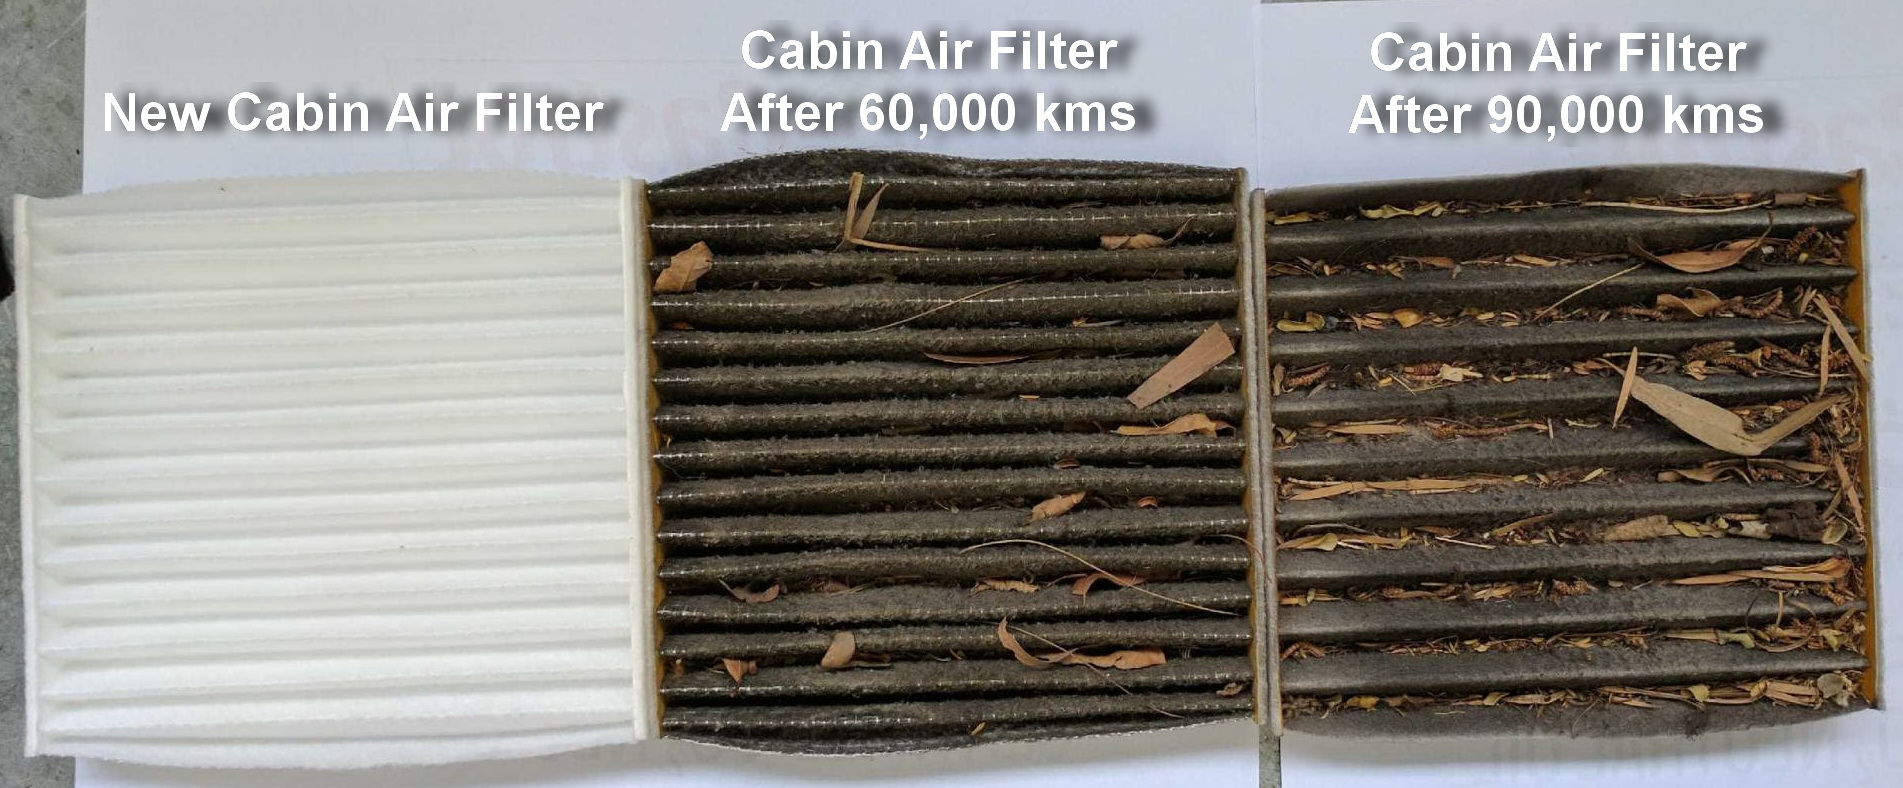 Cabin Air Filter Contamination Comparation